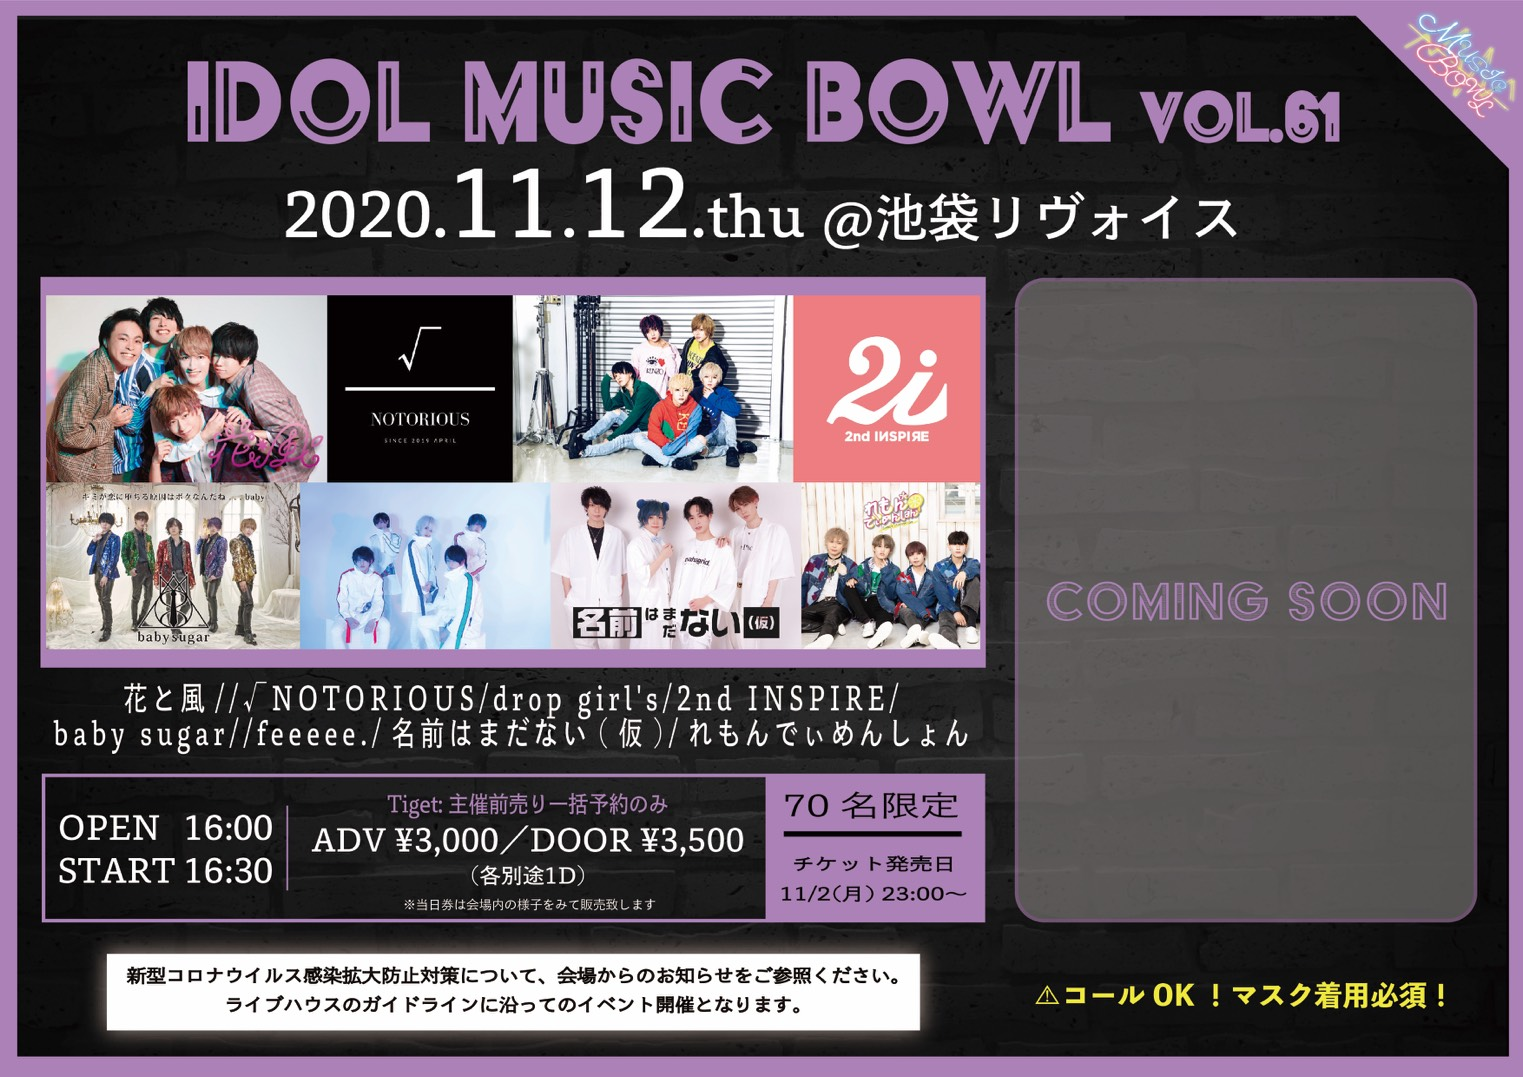 IDOL MUSIC BOWL vol.61